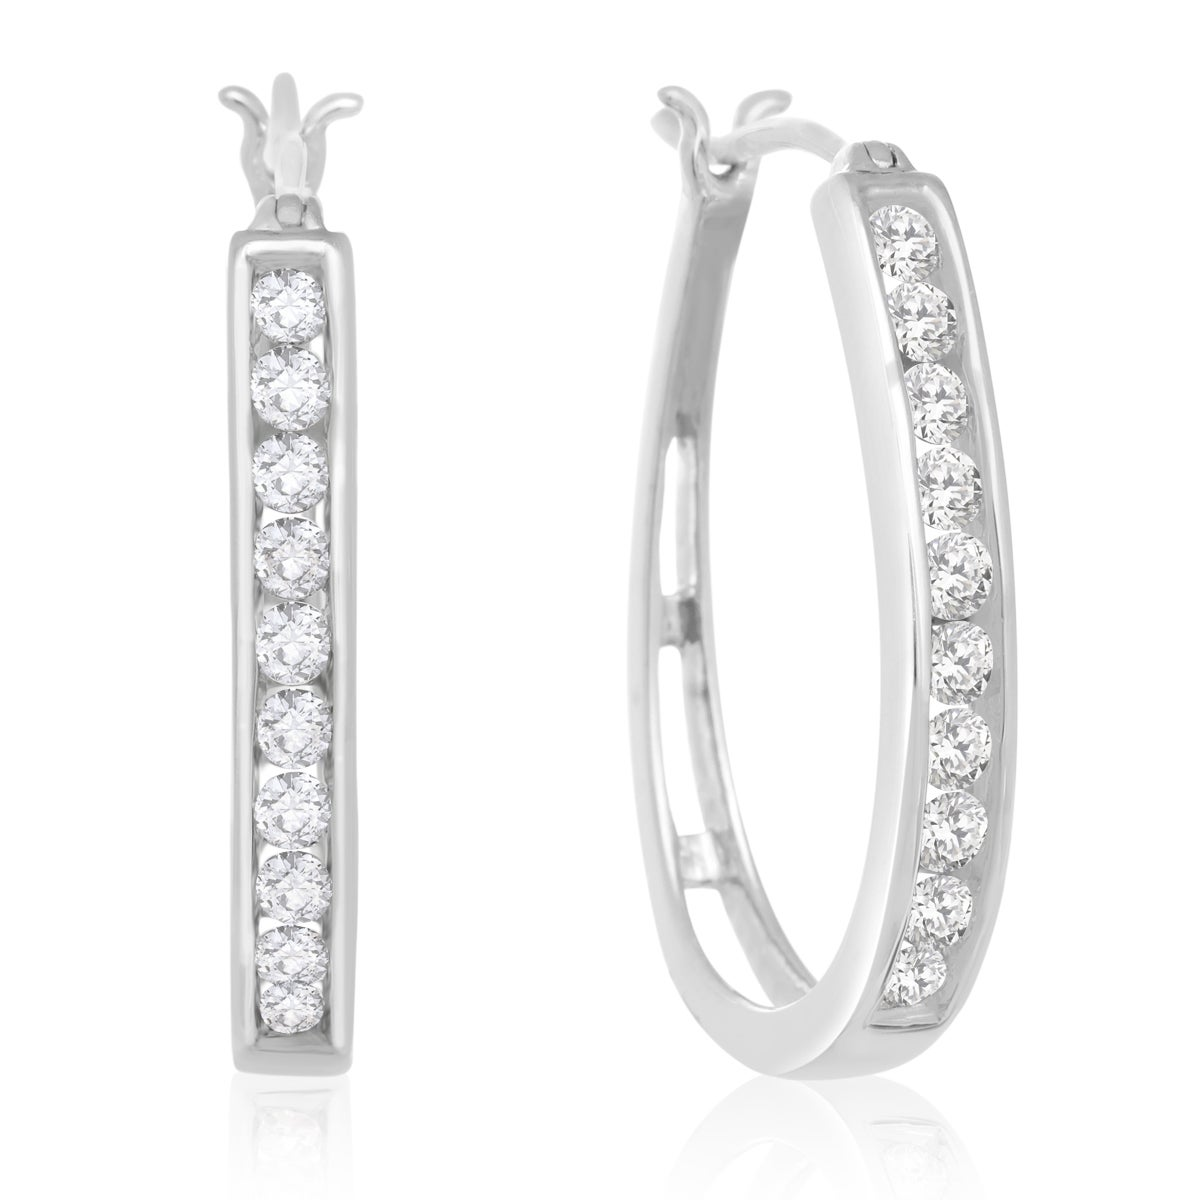 real carat sterling silver llc img hudson kim products zirconia timeless earrings cubic cz stud